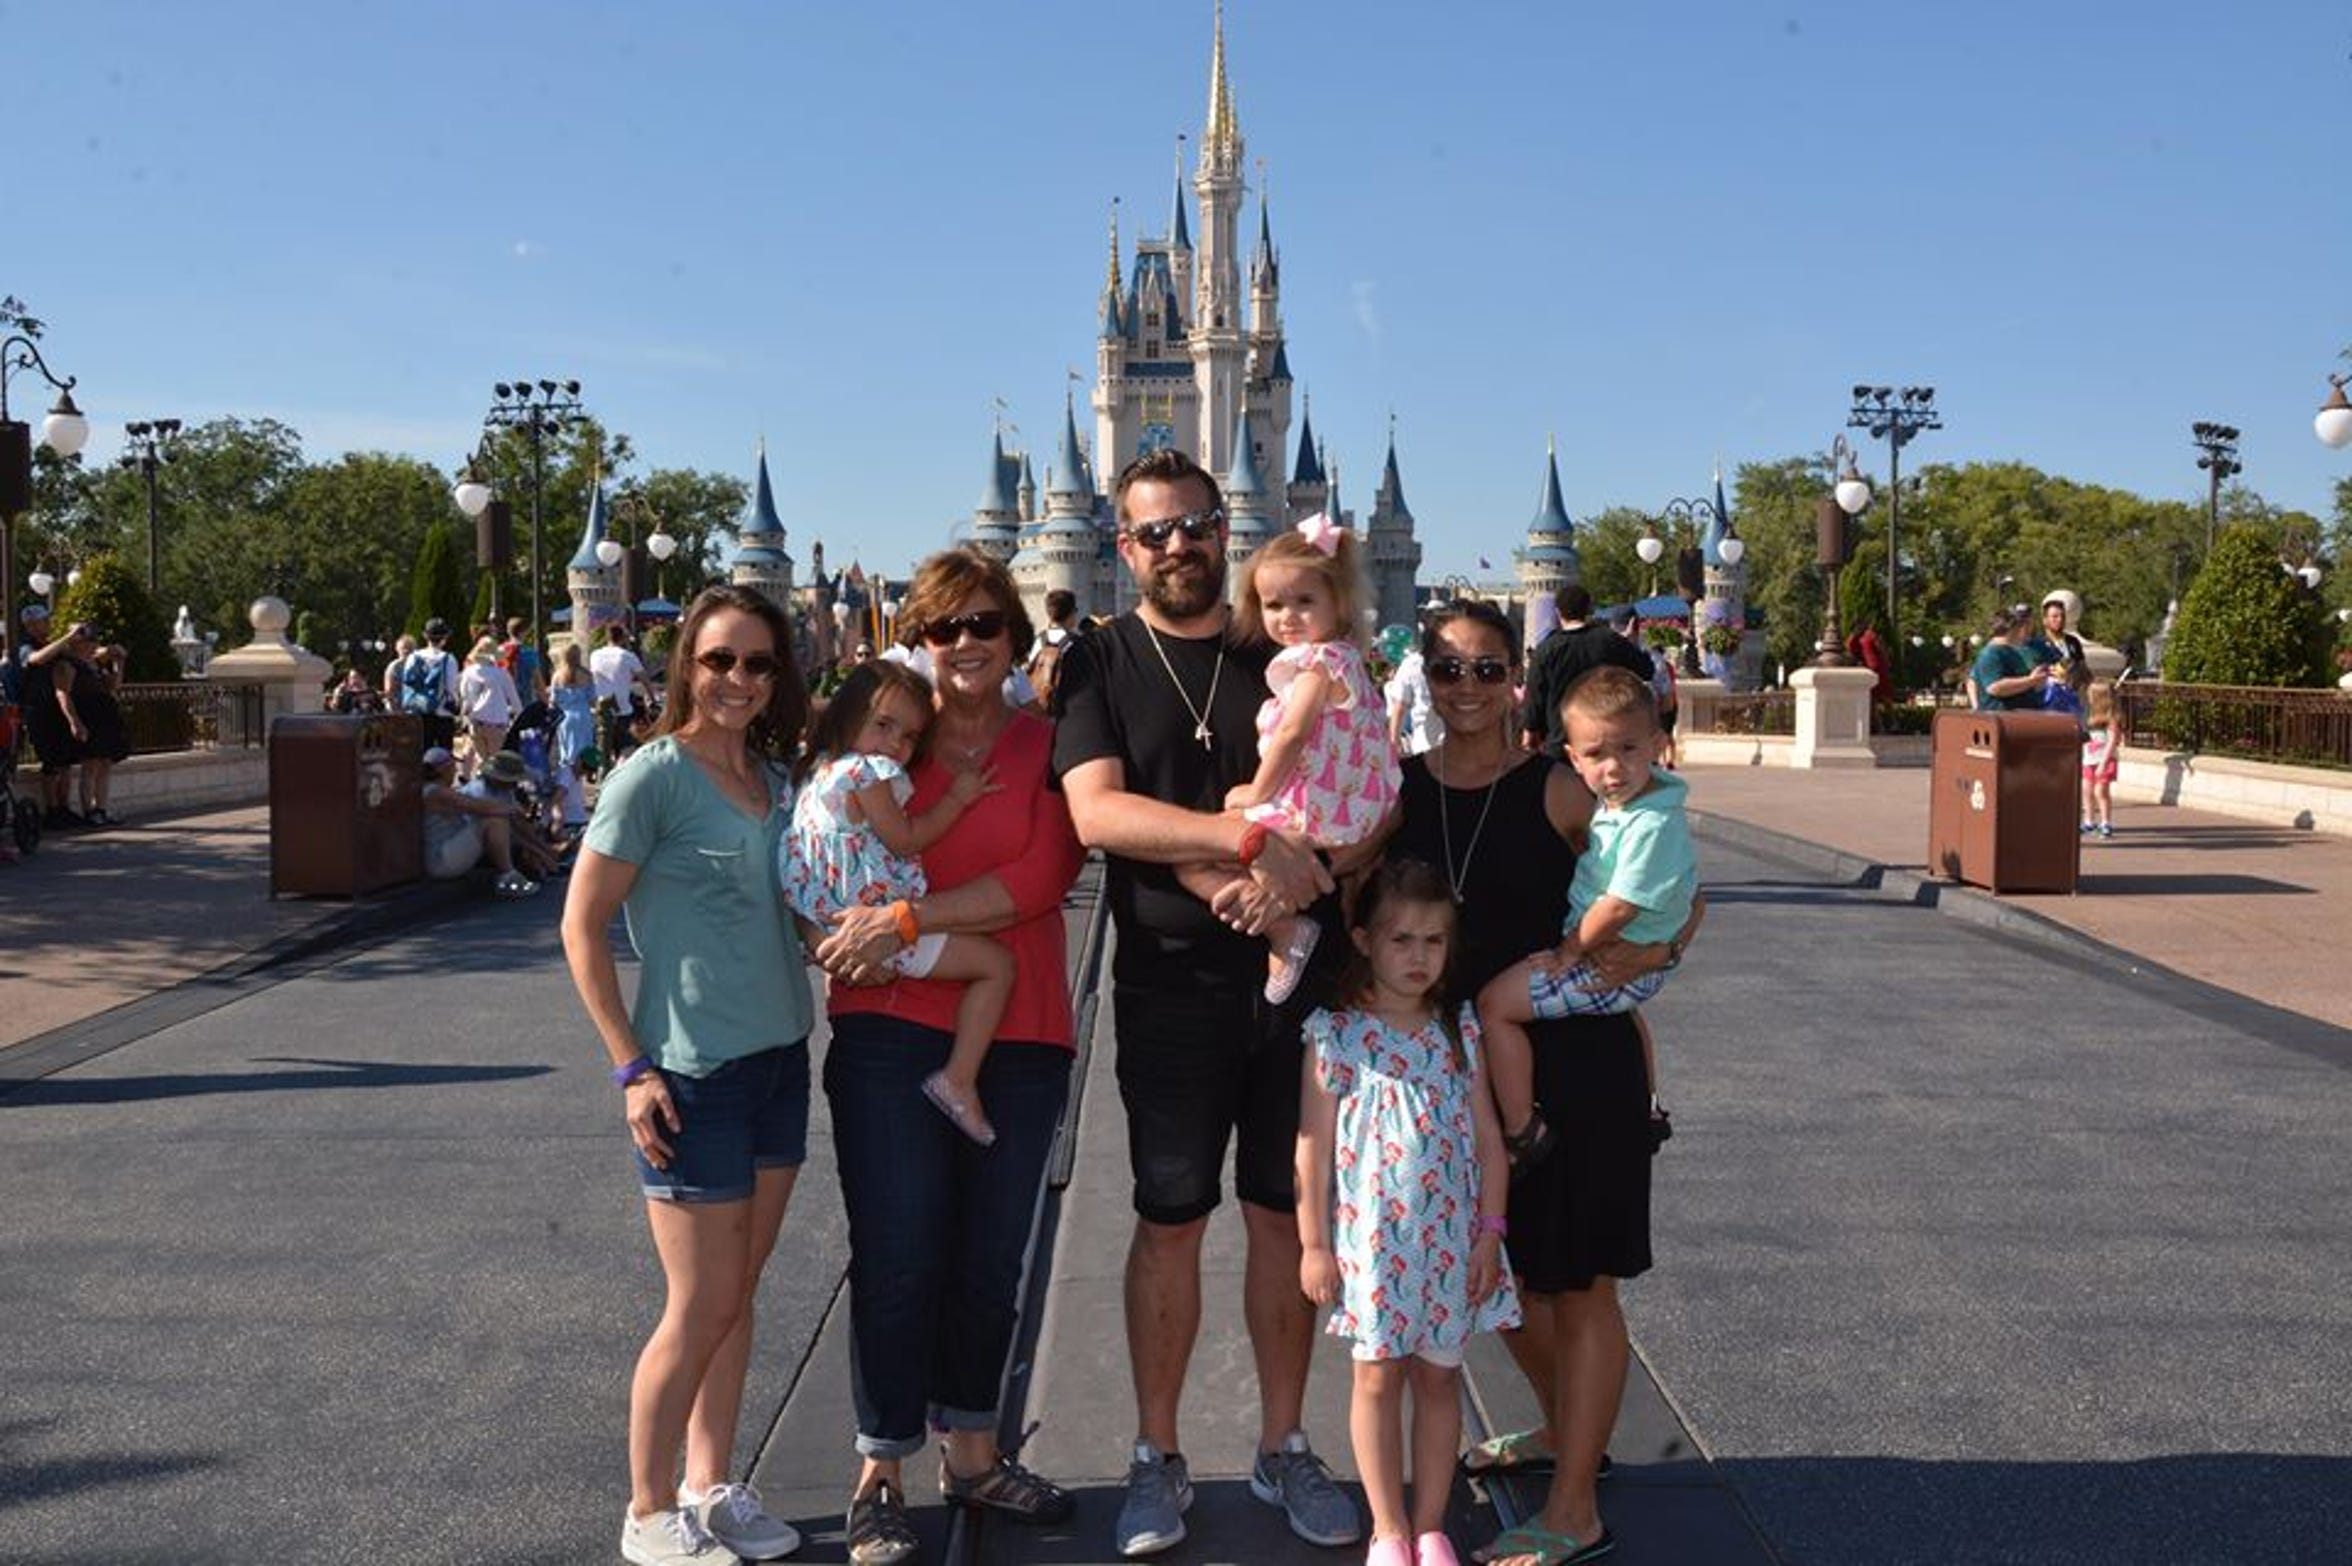 Jenna McCue, left, stands with her mother, Gloria Petrowski, and brother and sister-in-law, Justin and Kara Petrowski at Walt Disney World in Orlando, Florida. McCue was highly invested in her nieces and nephews (front). Justin said she loved taking them on rides at the park.